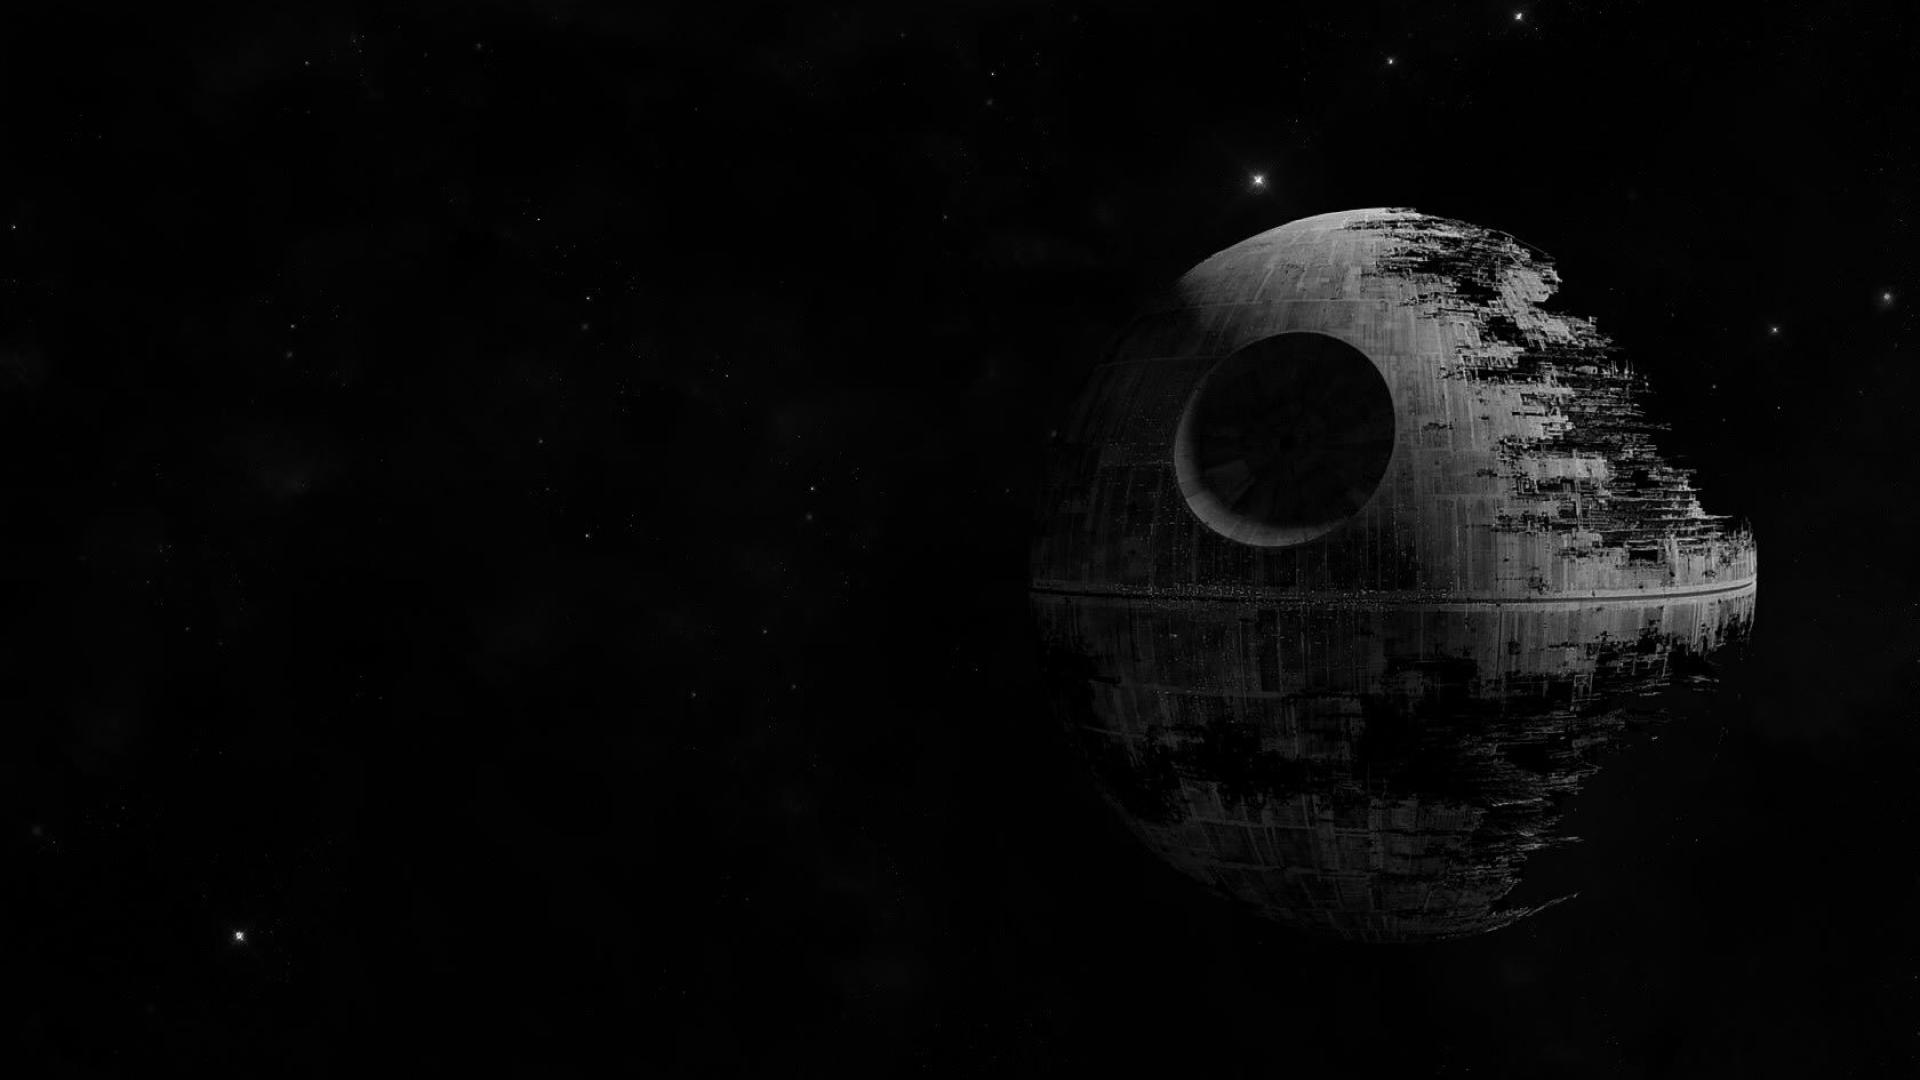 Star Wars Wallpapers Free